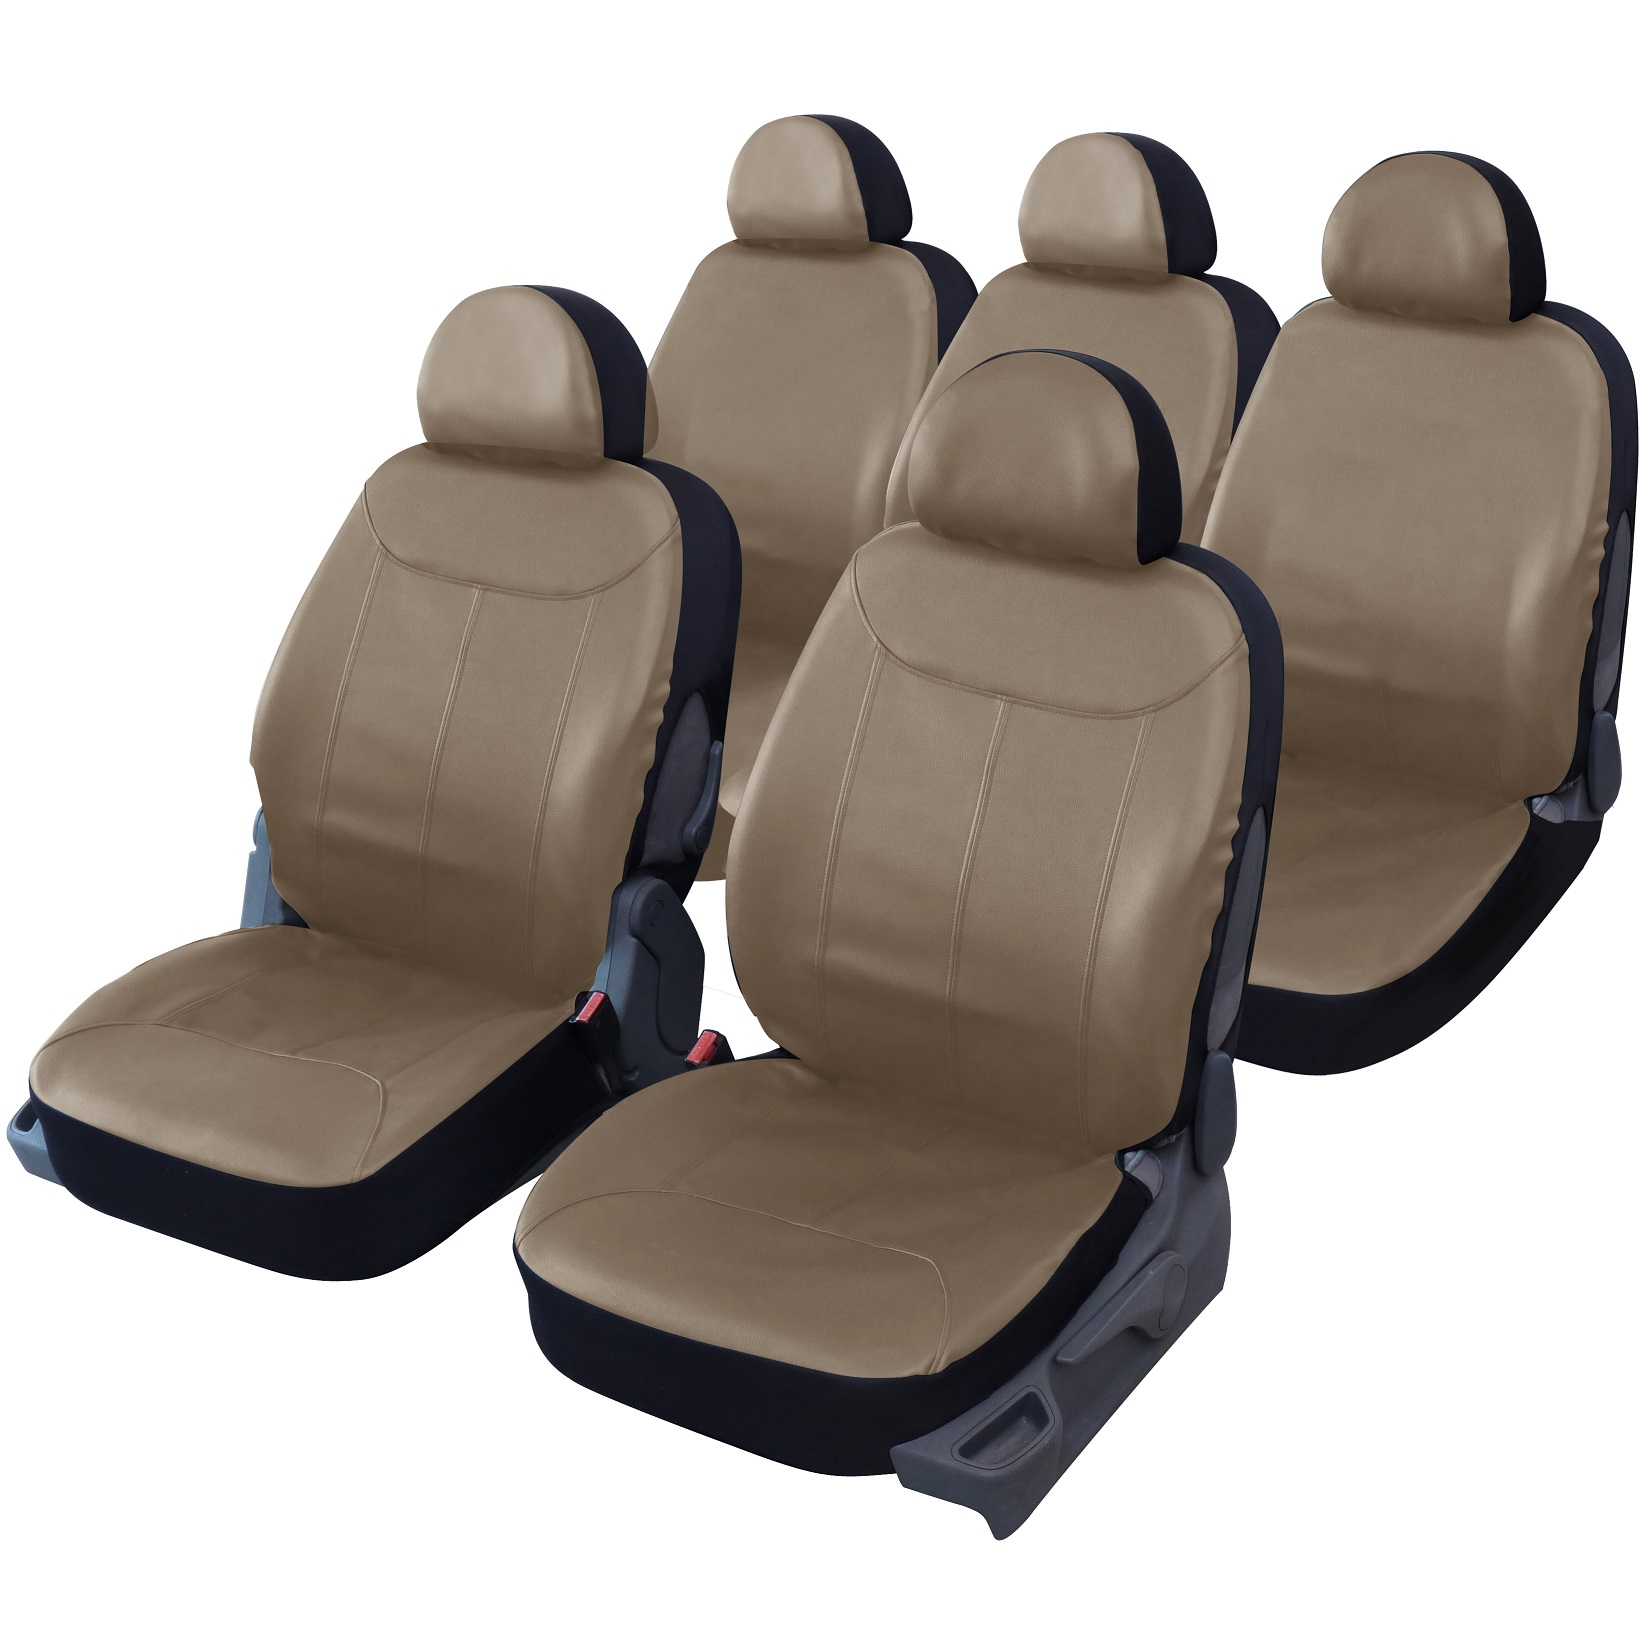 Housse de si ge auto universelle simili cuir beige texas for Housse cuir siege auto